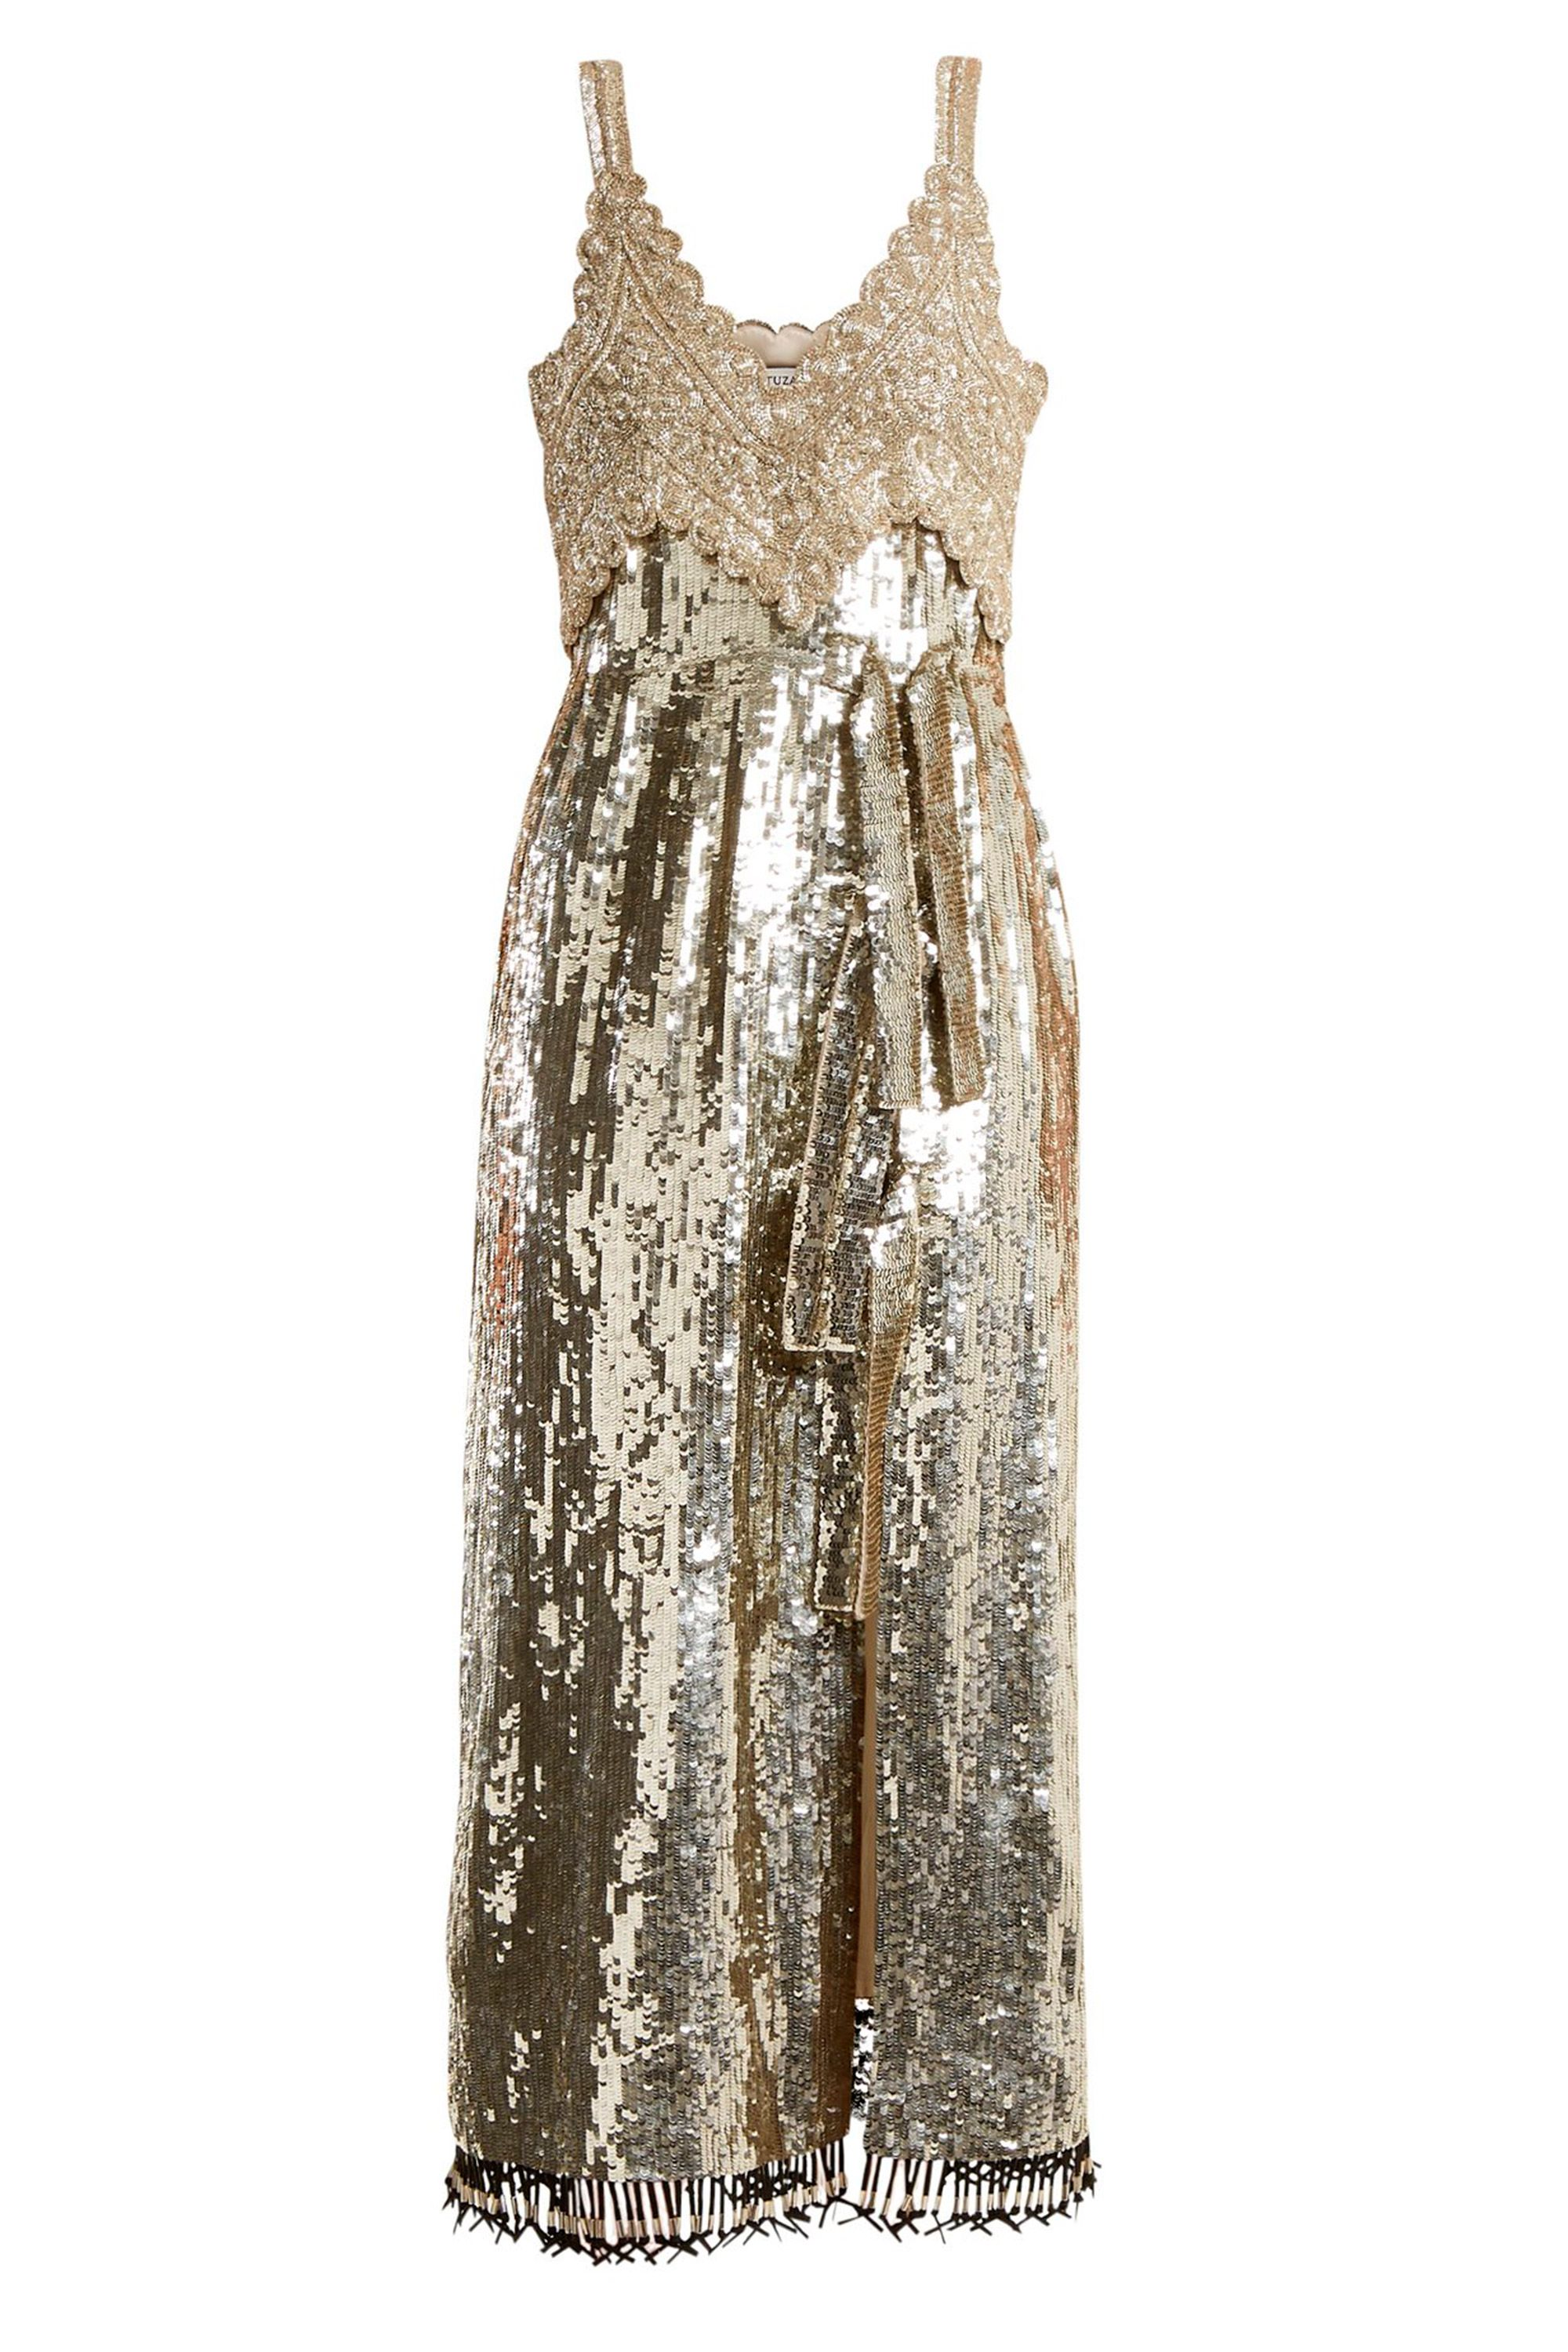 How to wear sequins to weddings